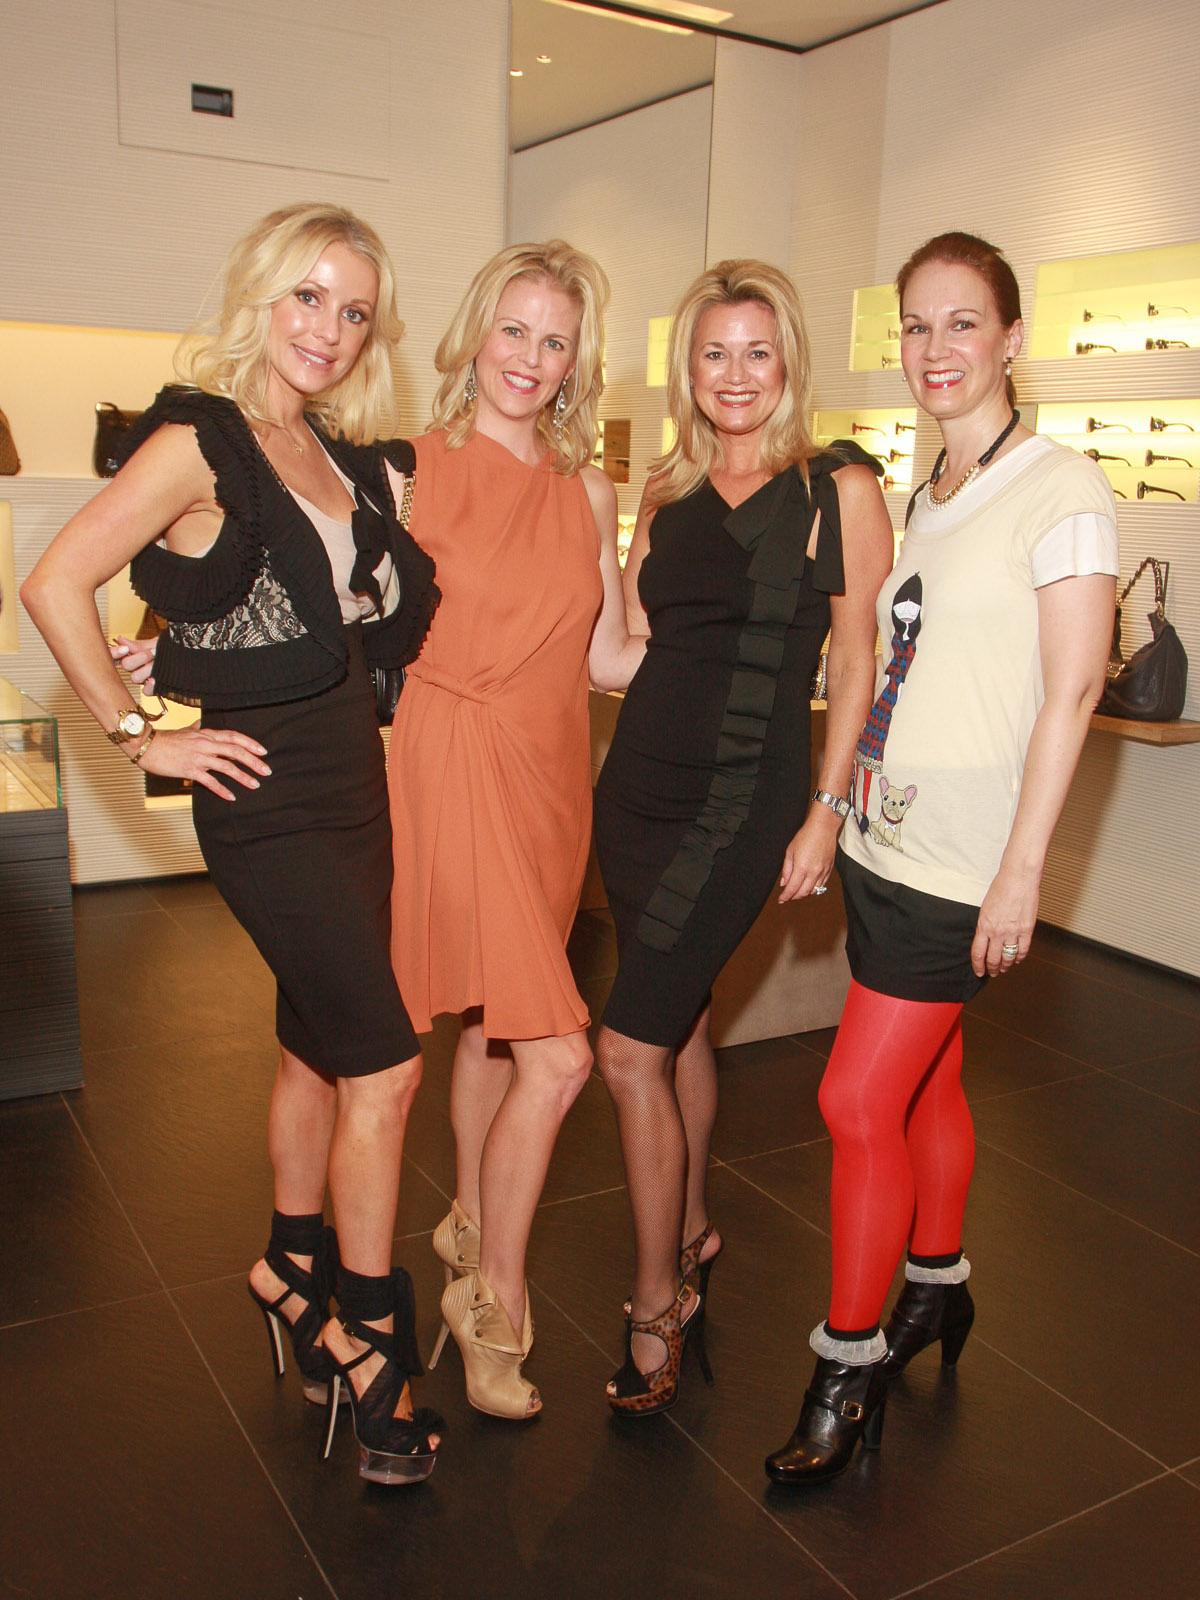 News_Fendi lunch_Joyce Echols_Elizabeth Petersen_Millette Sherman_Beth Muecke